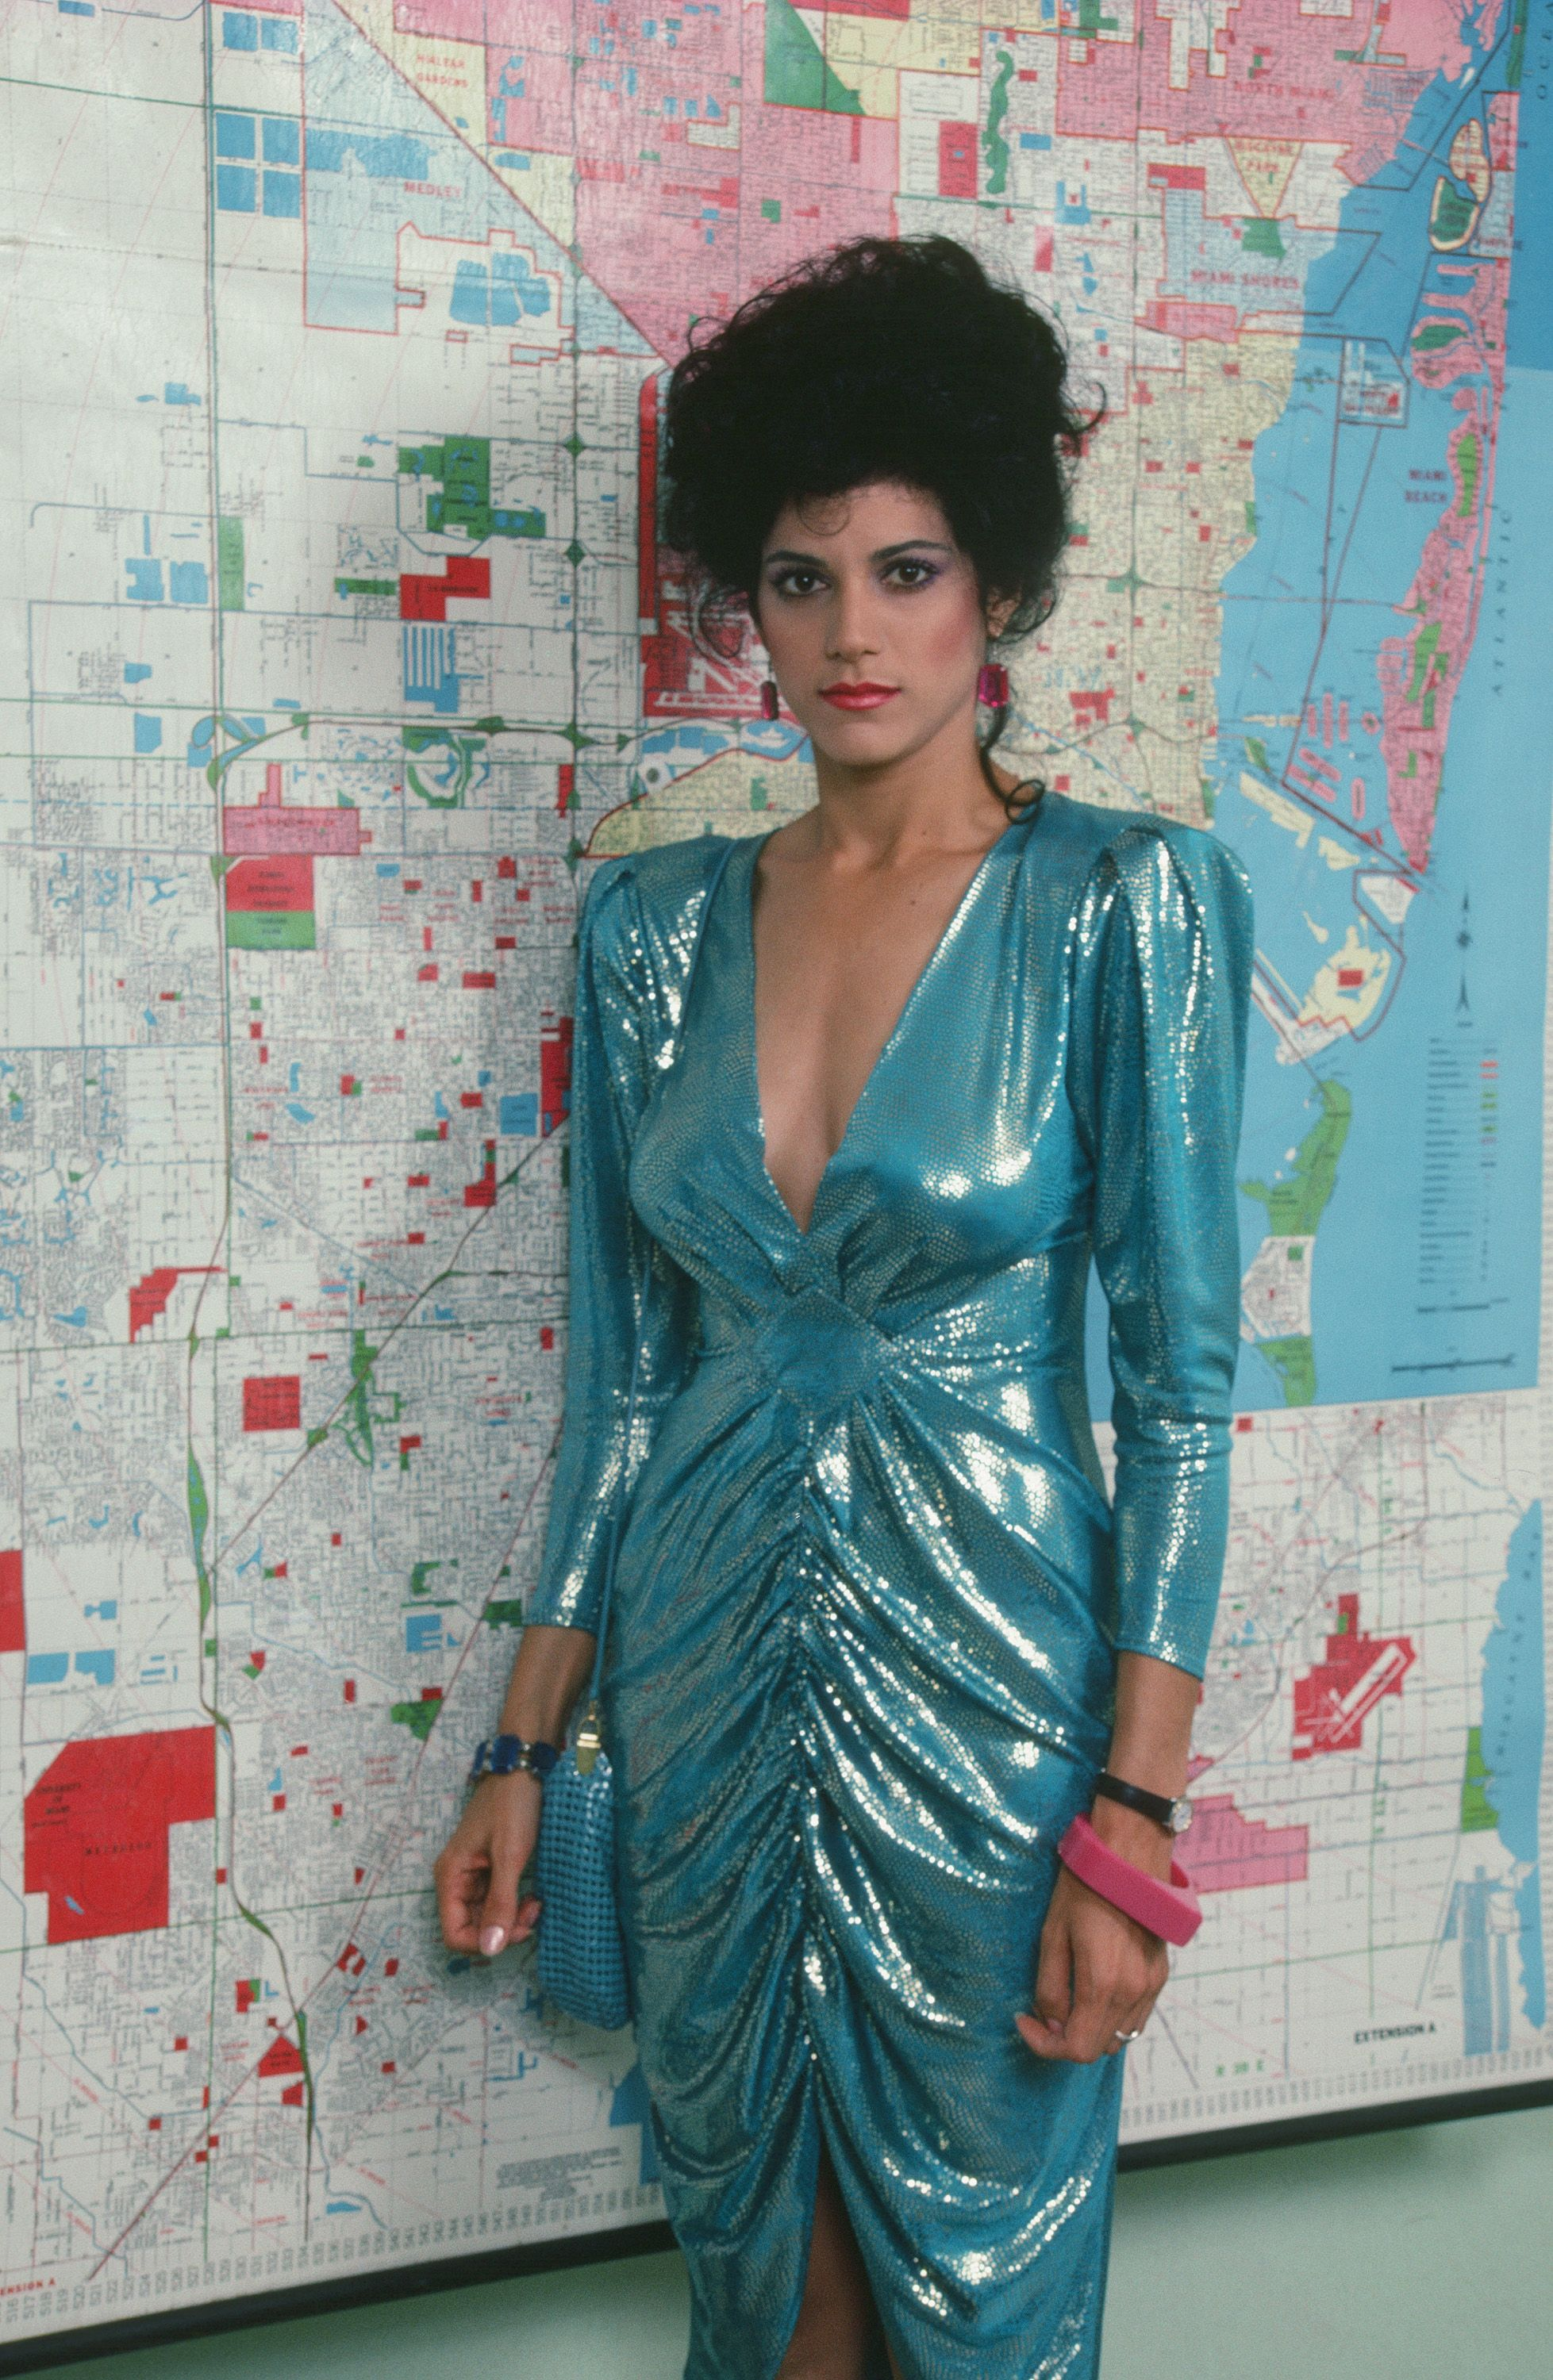 80s Fashion Trends That Are Coming Back - Style Trends From the 1980s